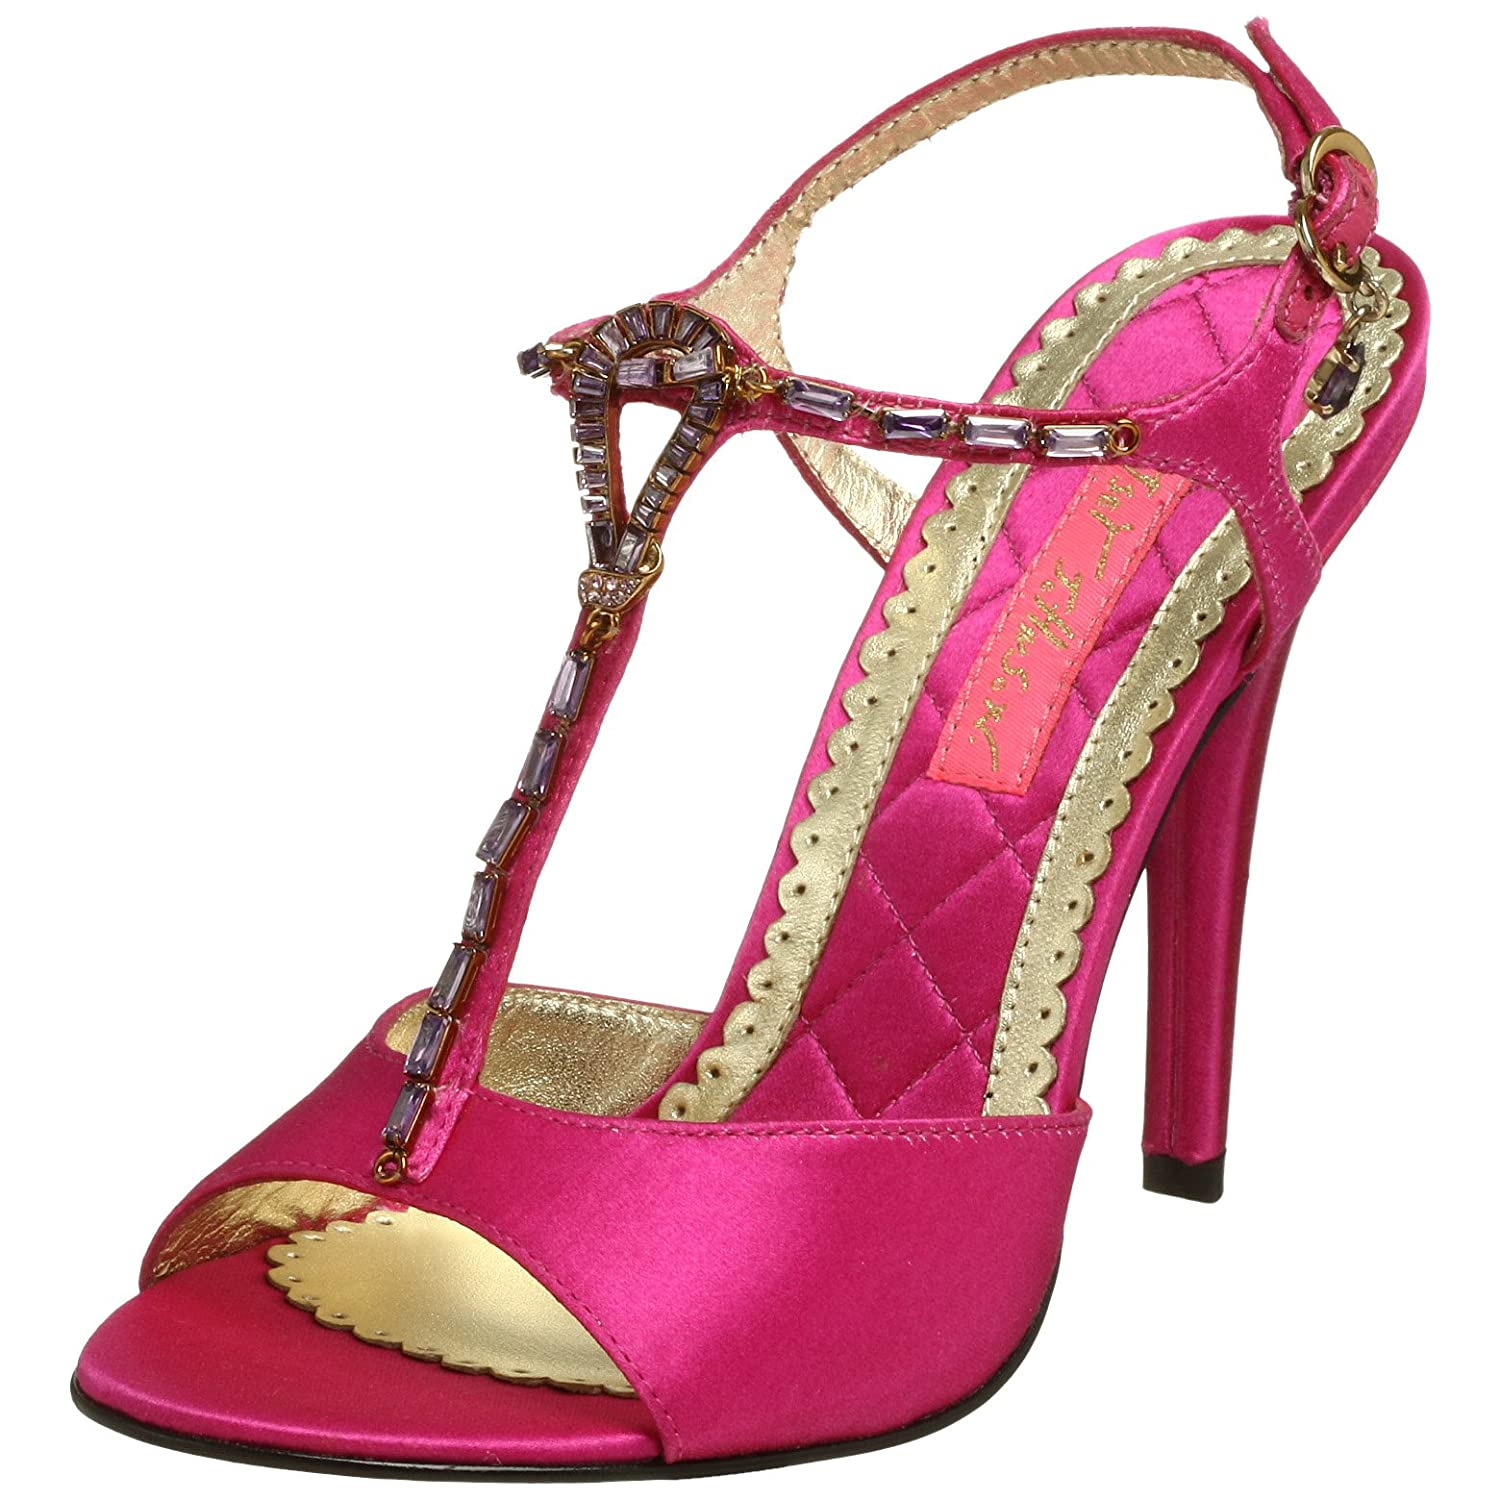 Betsey Johnson Women's Randilyn T-Strap Sandal - Free Overnight Shipping & Return Shipping: Endless.com from endless.com